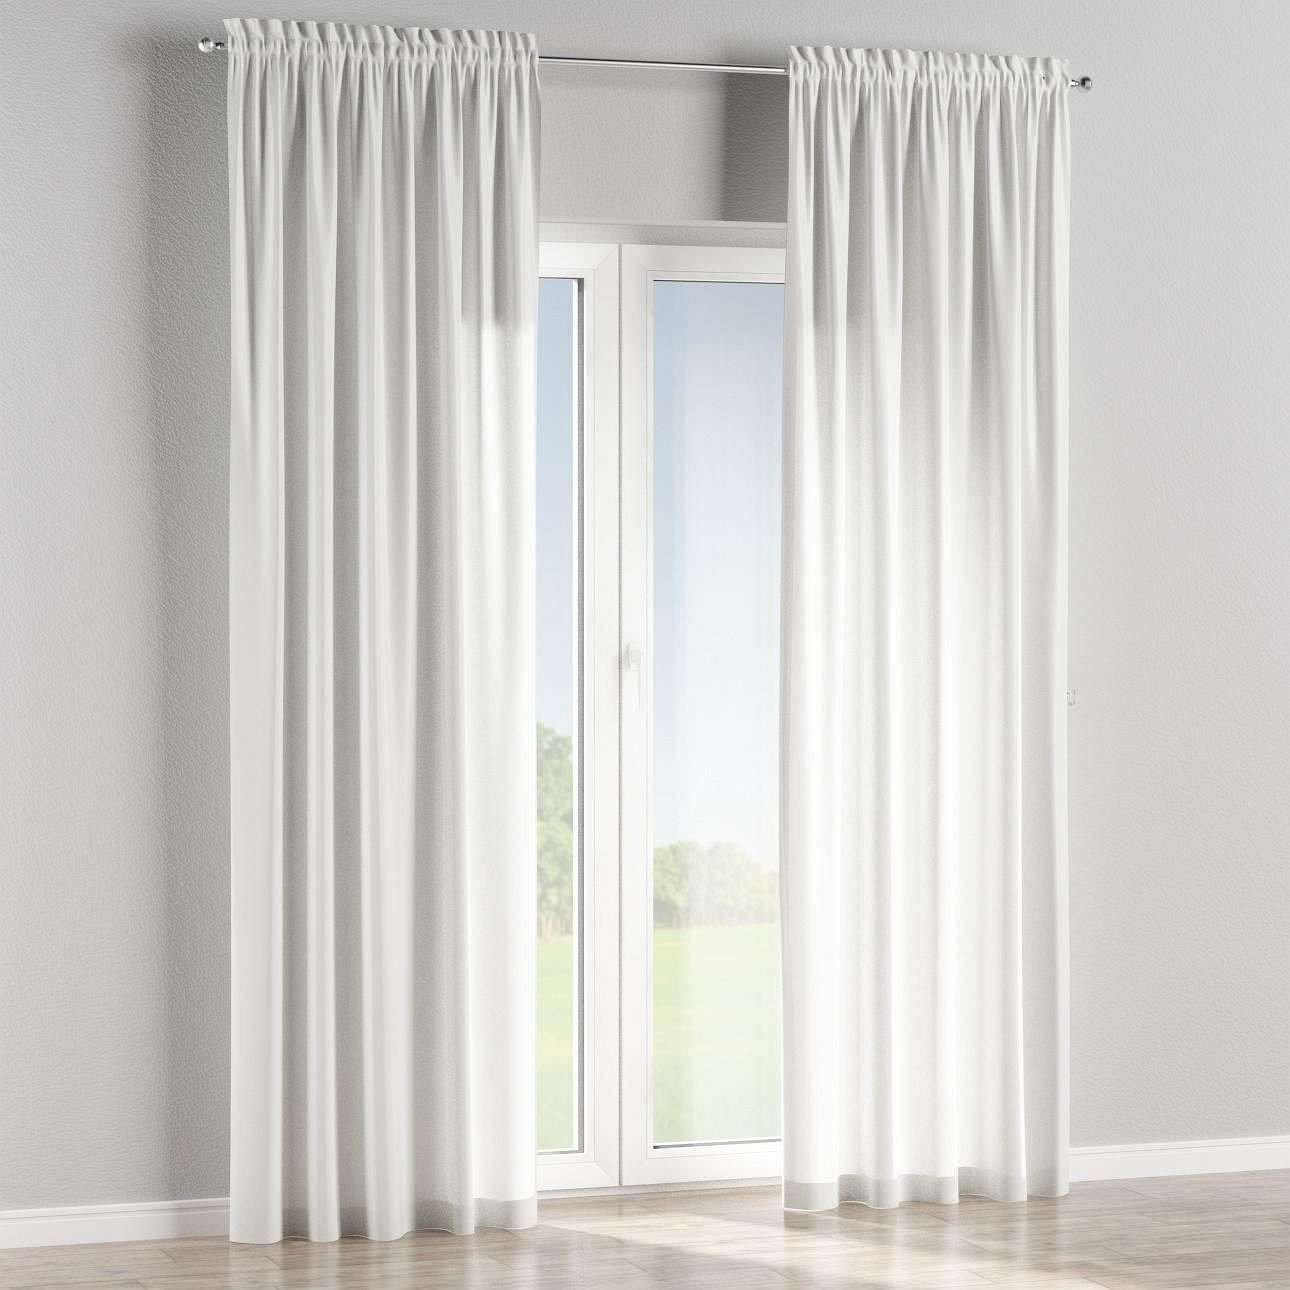 Slot and frill curtains in collection Arcana, fabric: 102-01